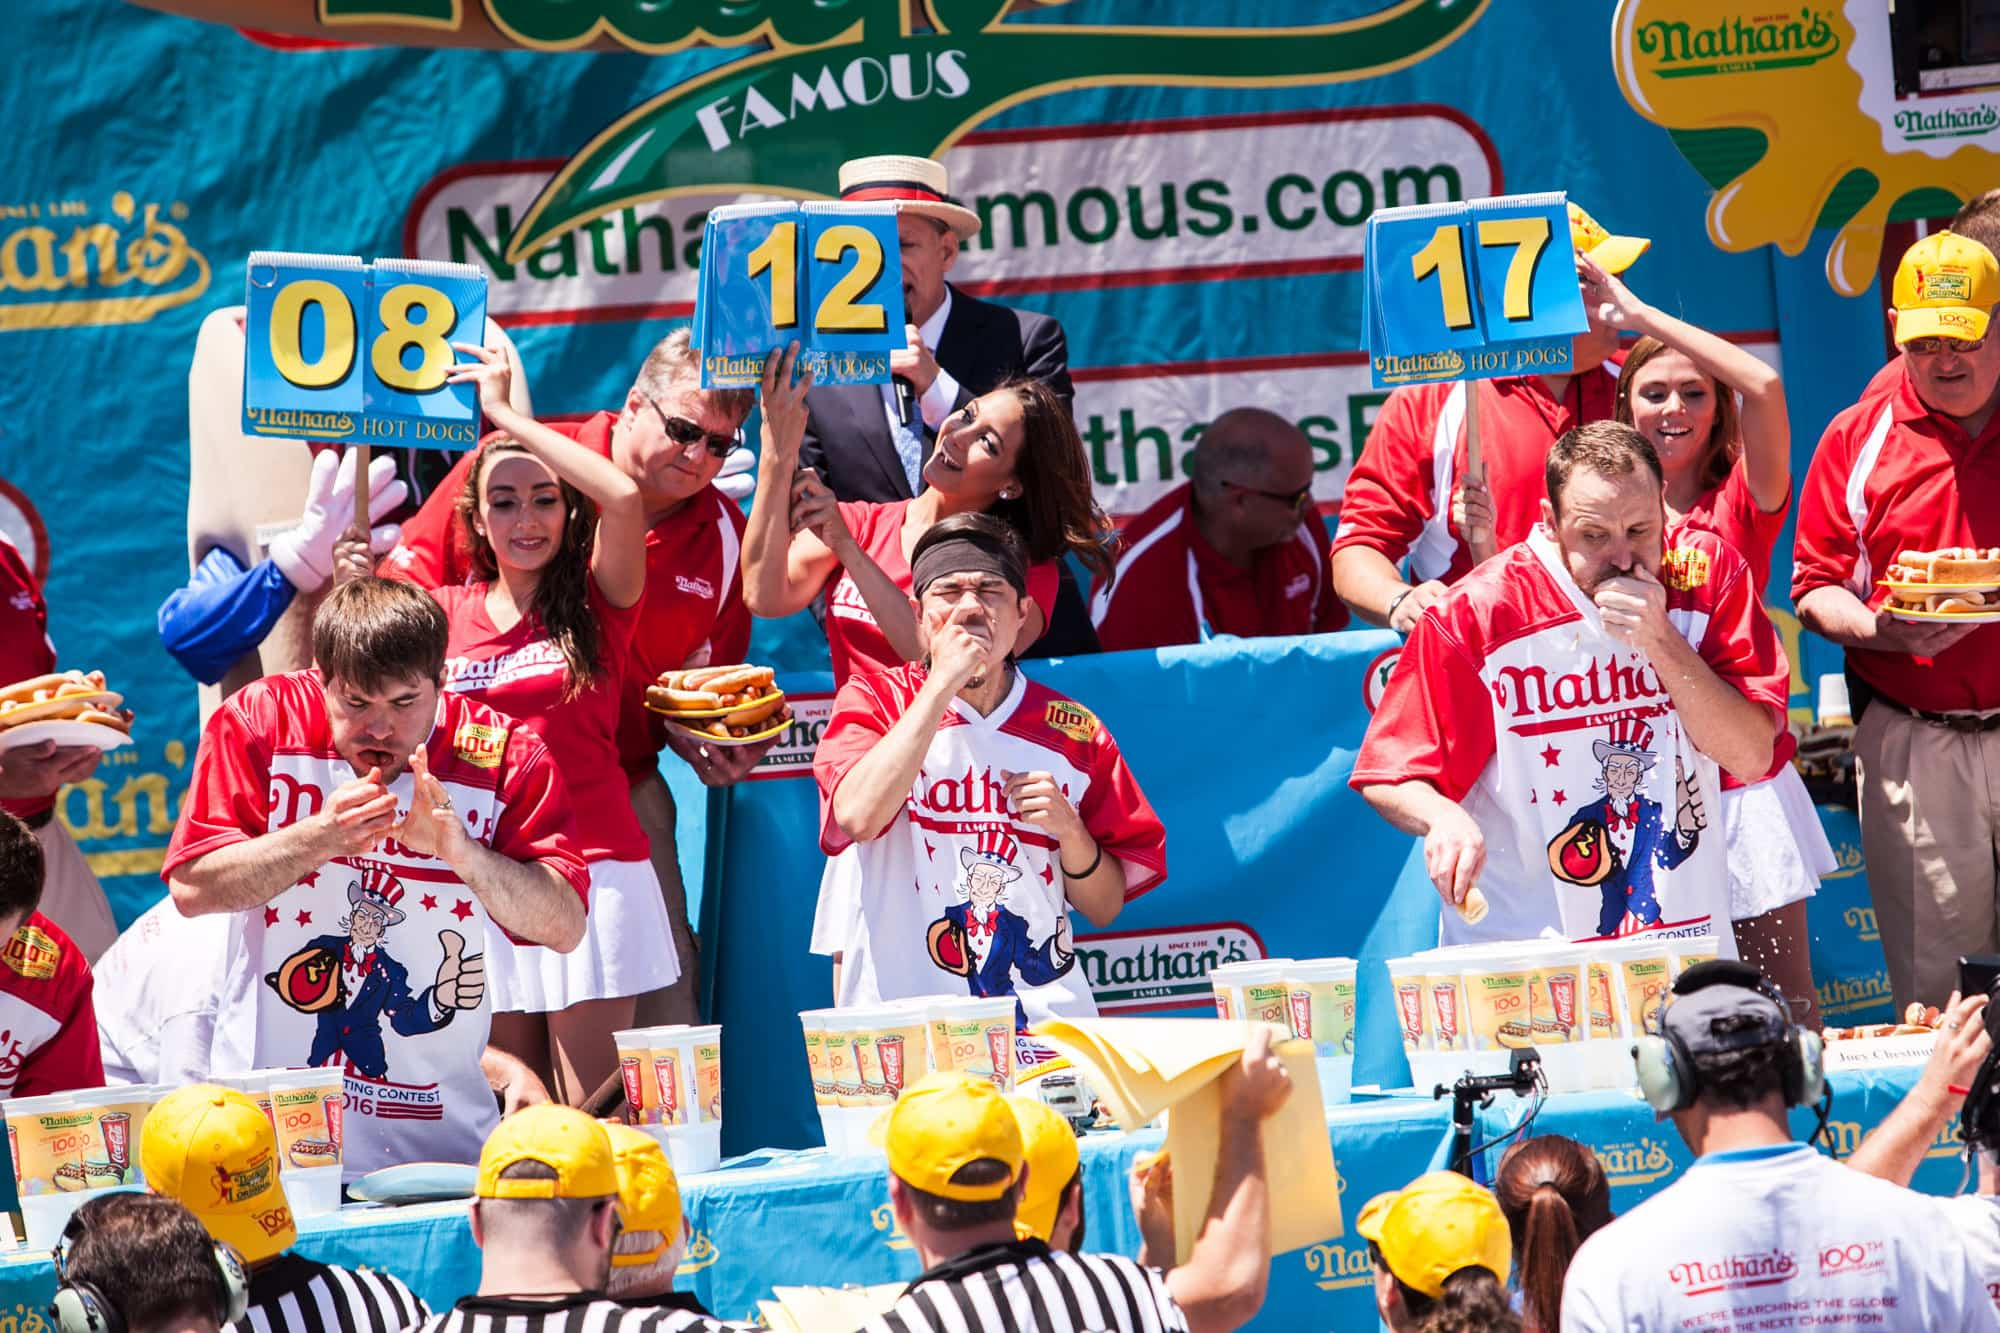 2016 Nathan's Famous July Fourth hot dog eating contest at Coney Island.